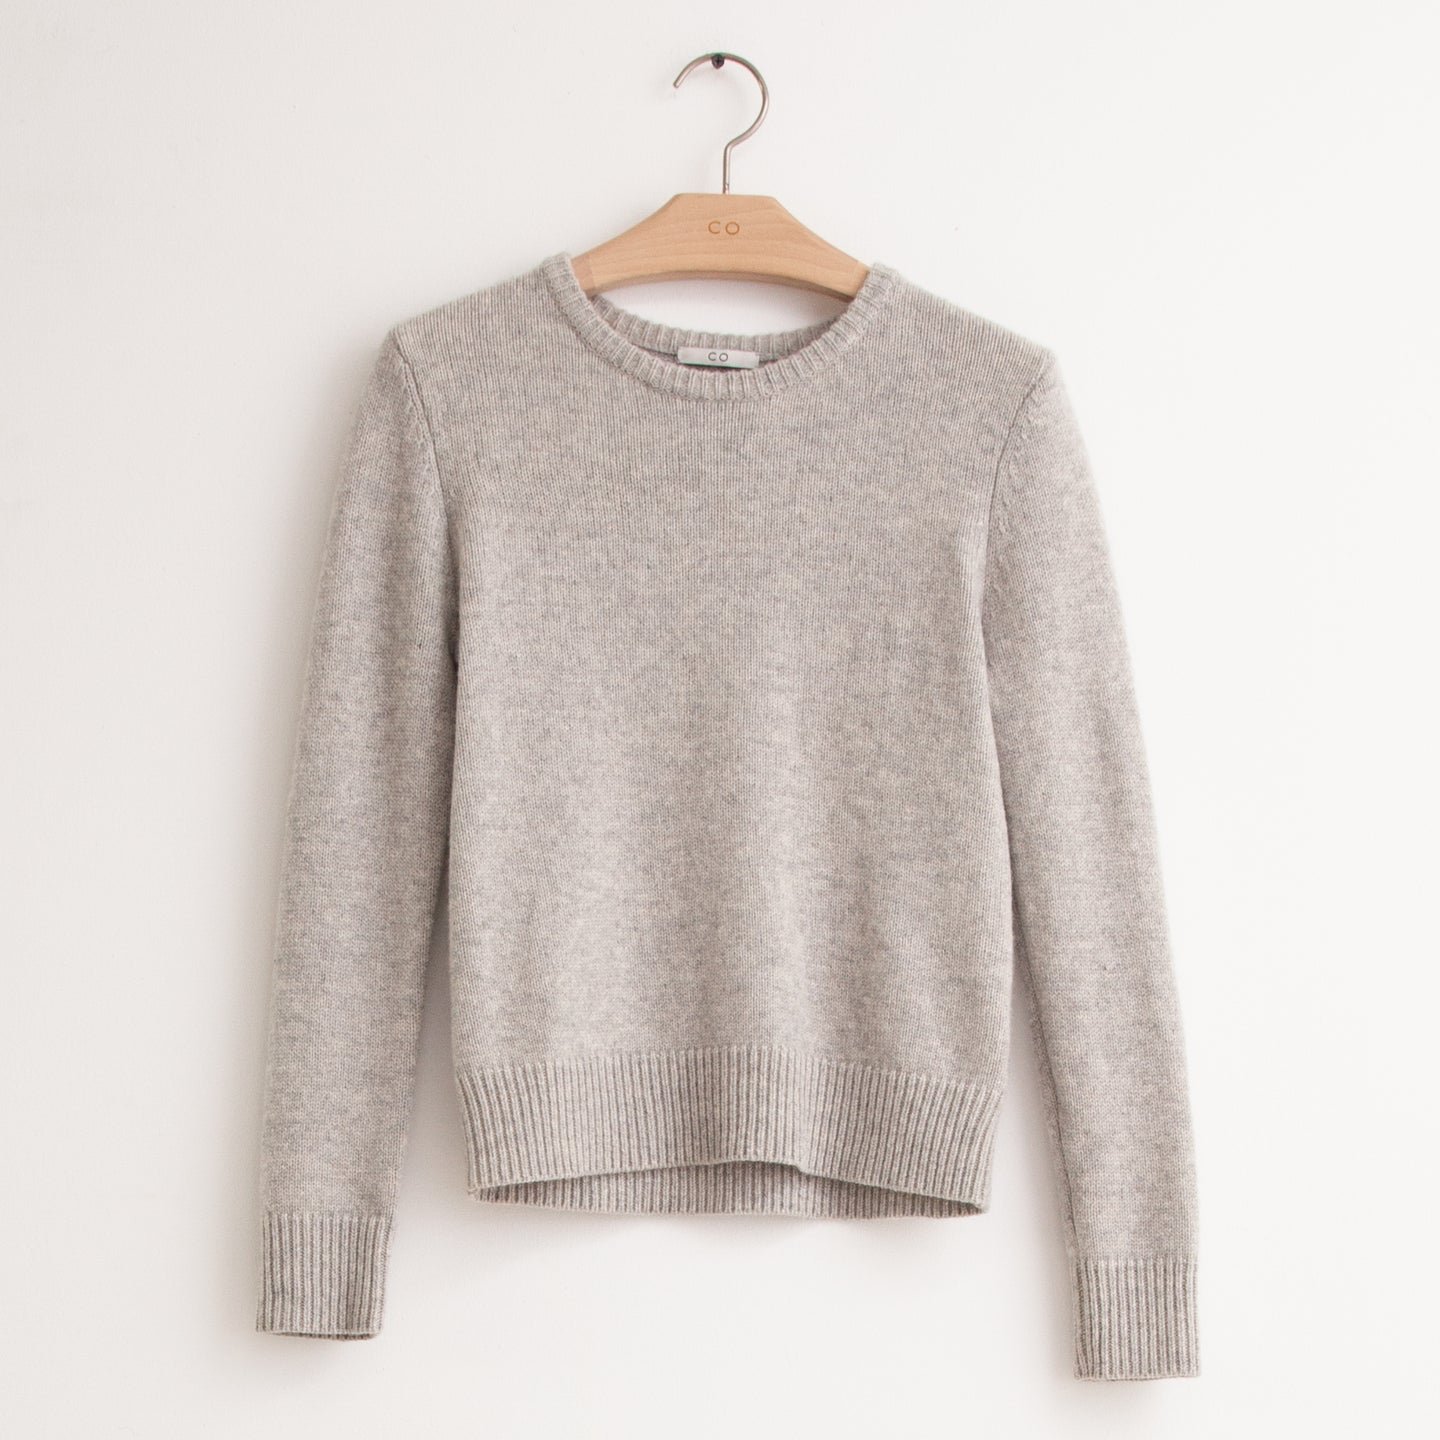 Crew neck sweater with ribbed banded hem in grey cashmere - CO